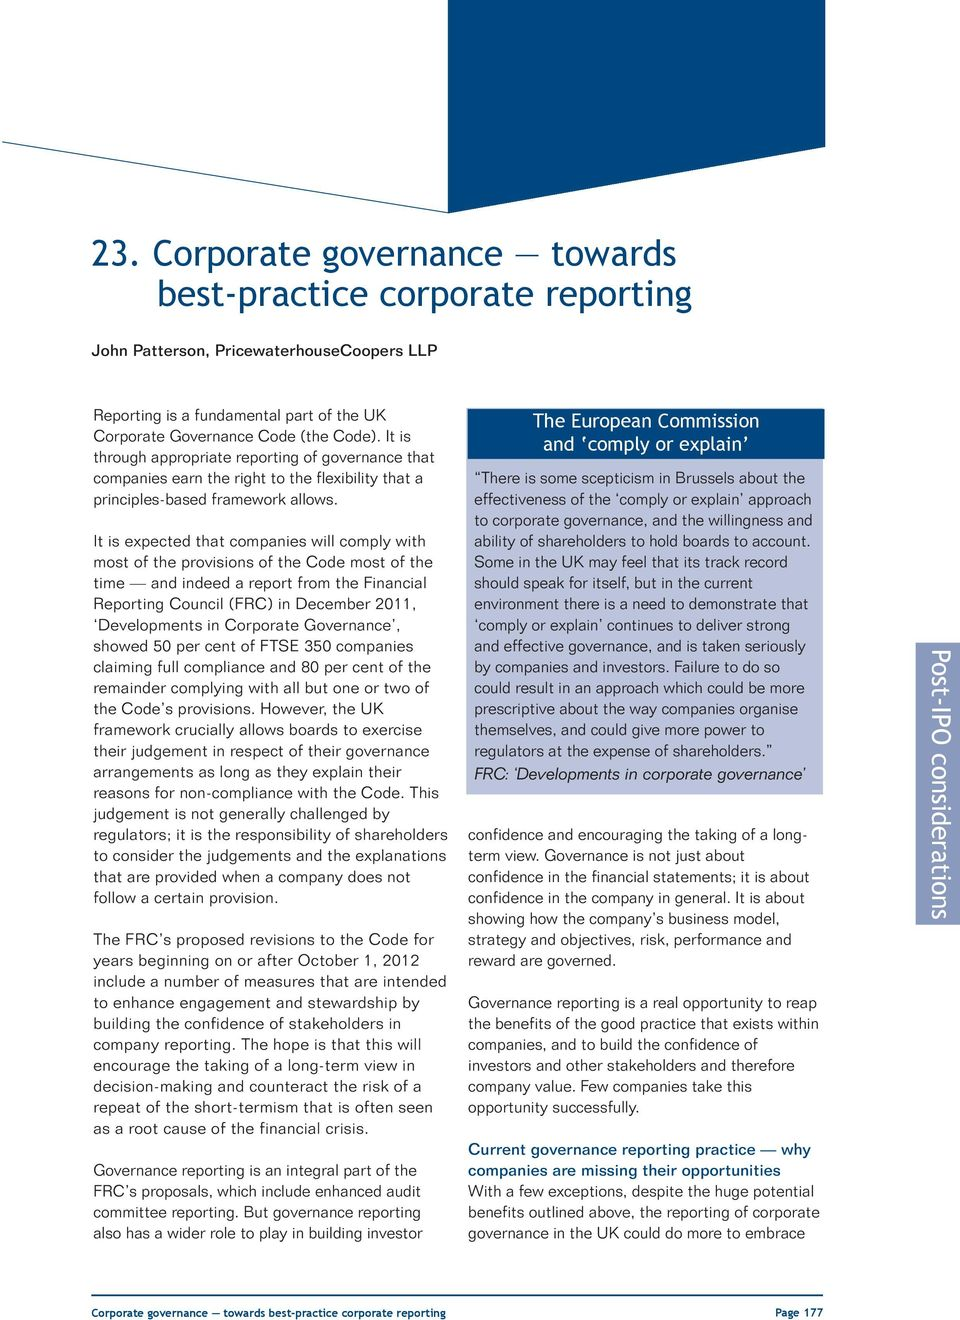 It is expected that companies wi compy with most of the provisions of the Code most of the time and indeed a report from the Financia Reporting Counci (FRC) in December 2011, Deveopments in Corporate